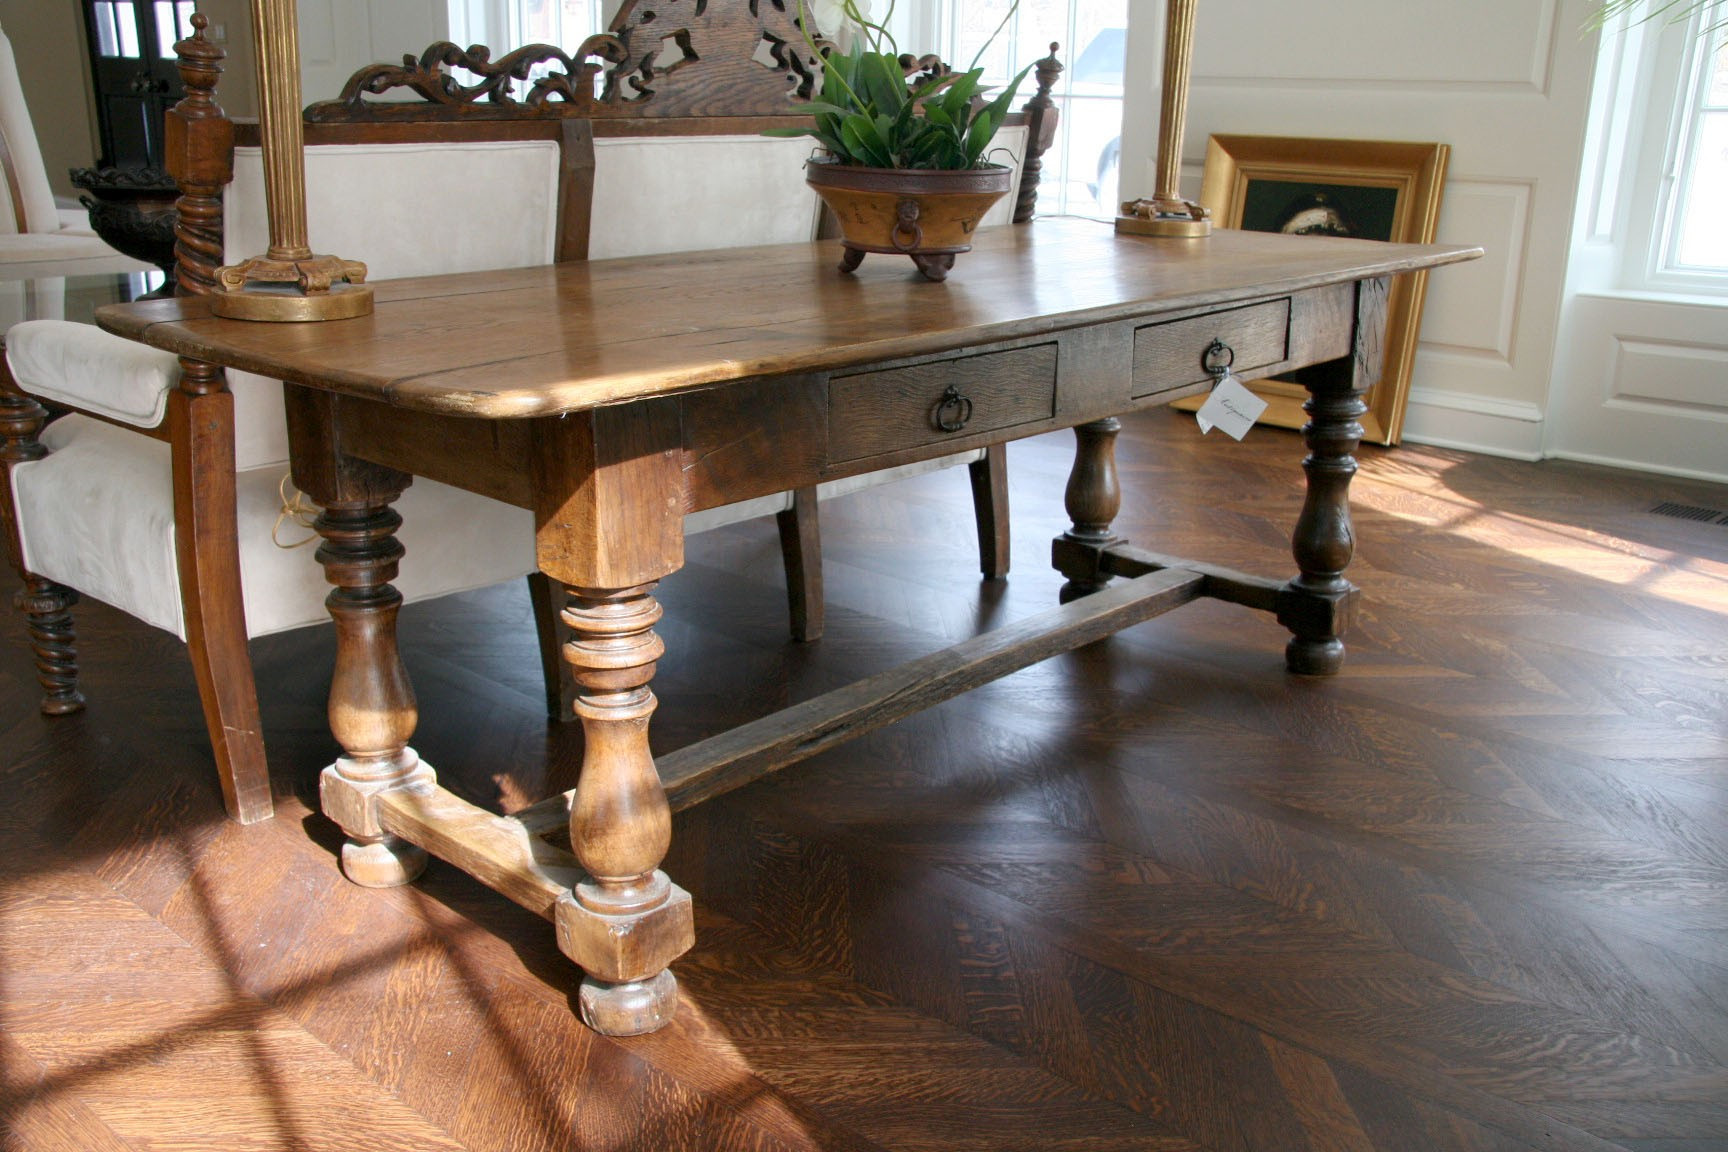 Best ideas about Dining Room Table Legs . Save or Pin Antique Dining Table Legs Dining room ideas Now.